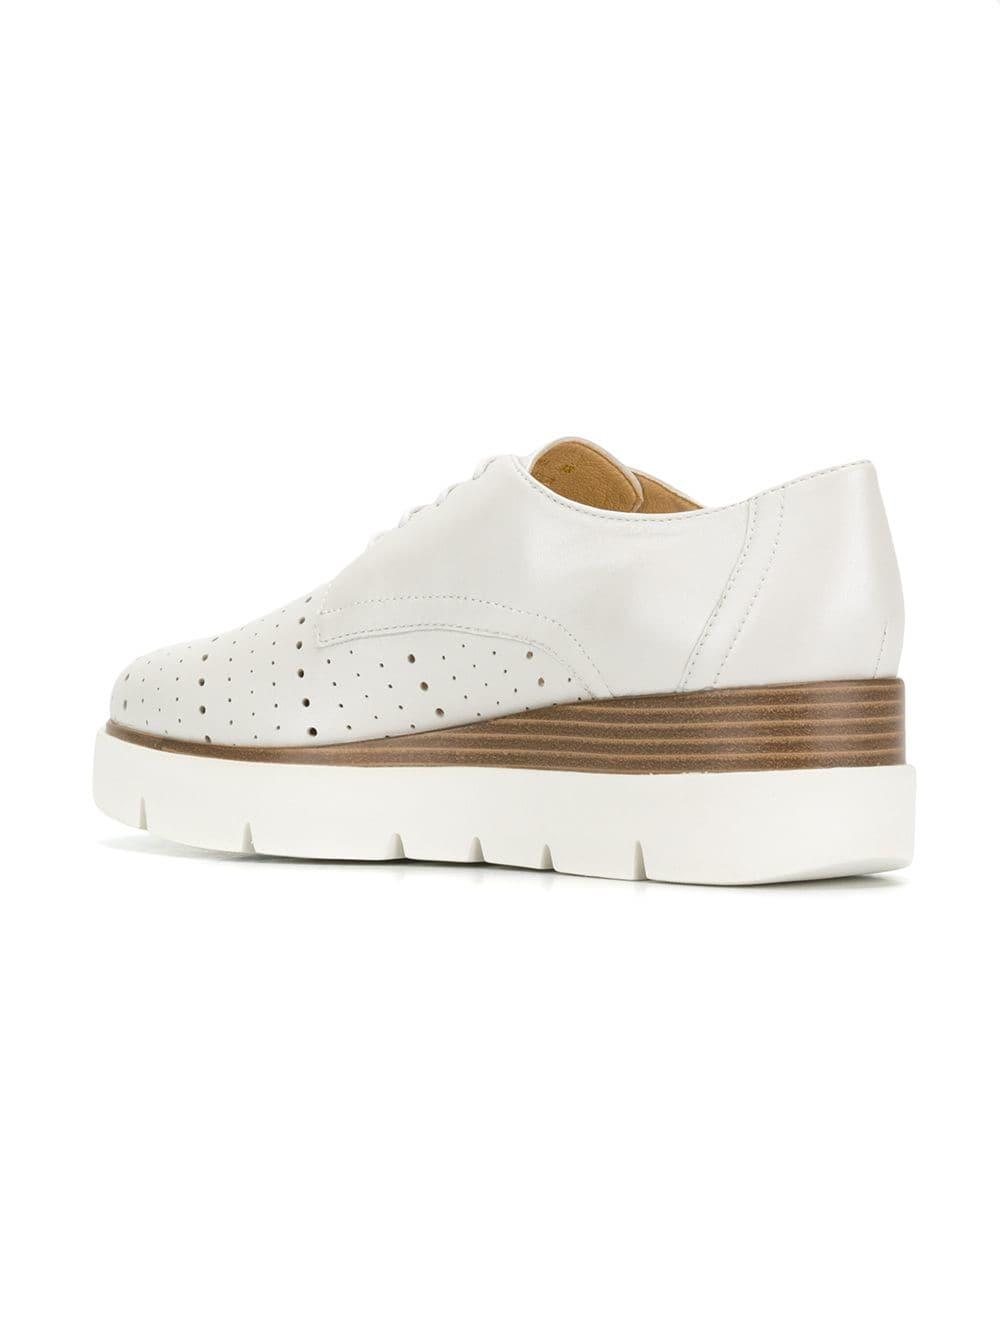 95ee1eadf5 Geox Kattilou Lace-up Shoes in White - Save 13% - Lyst